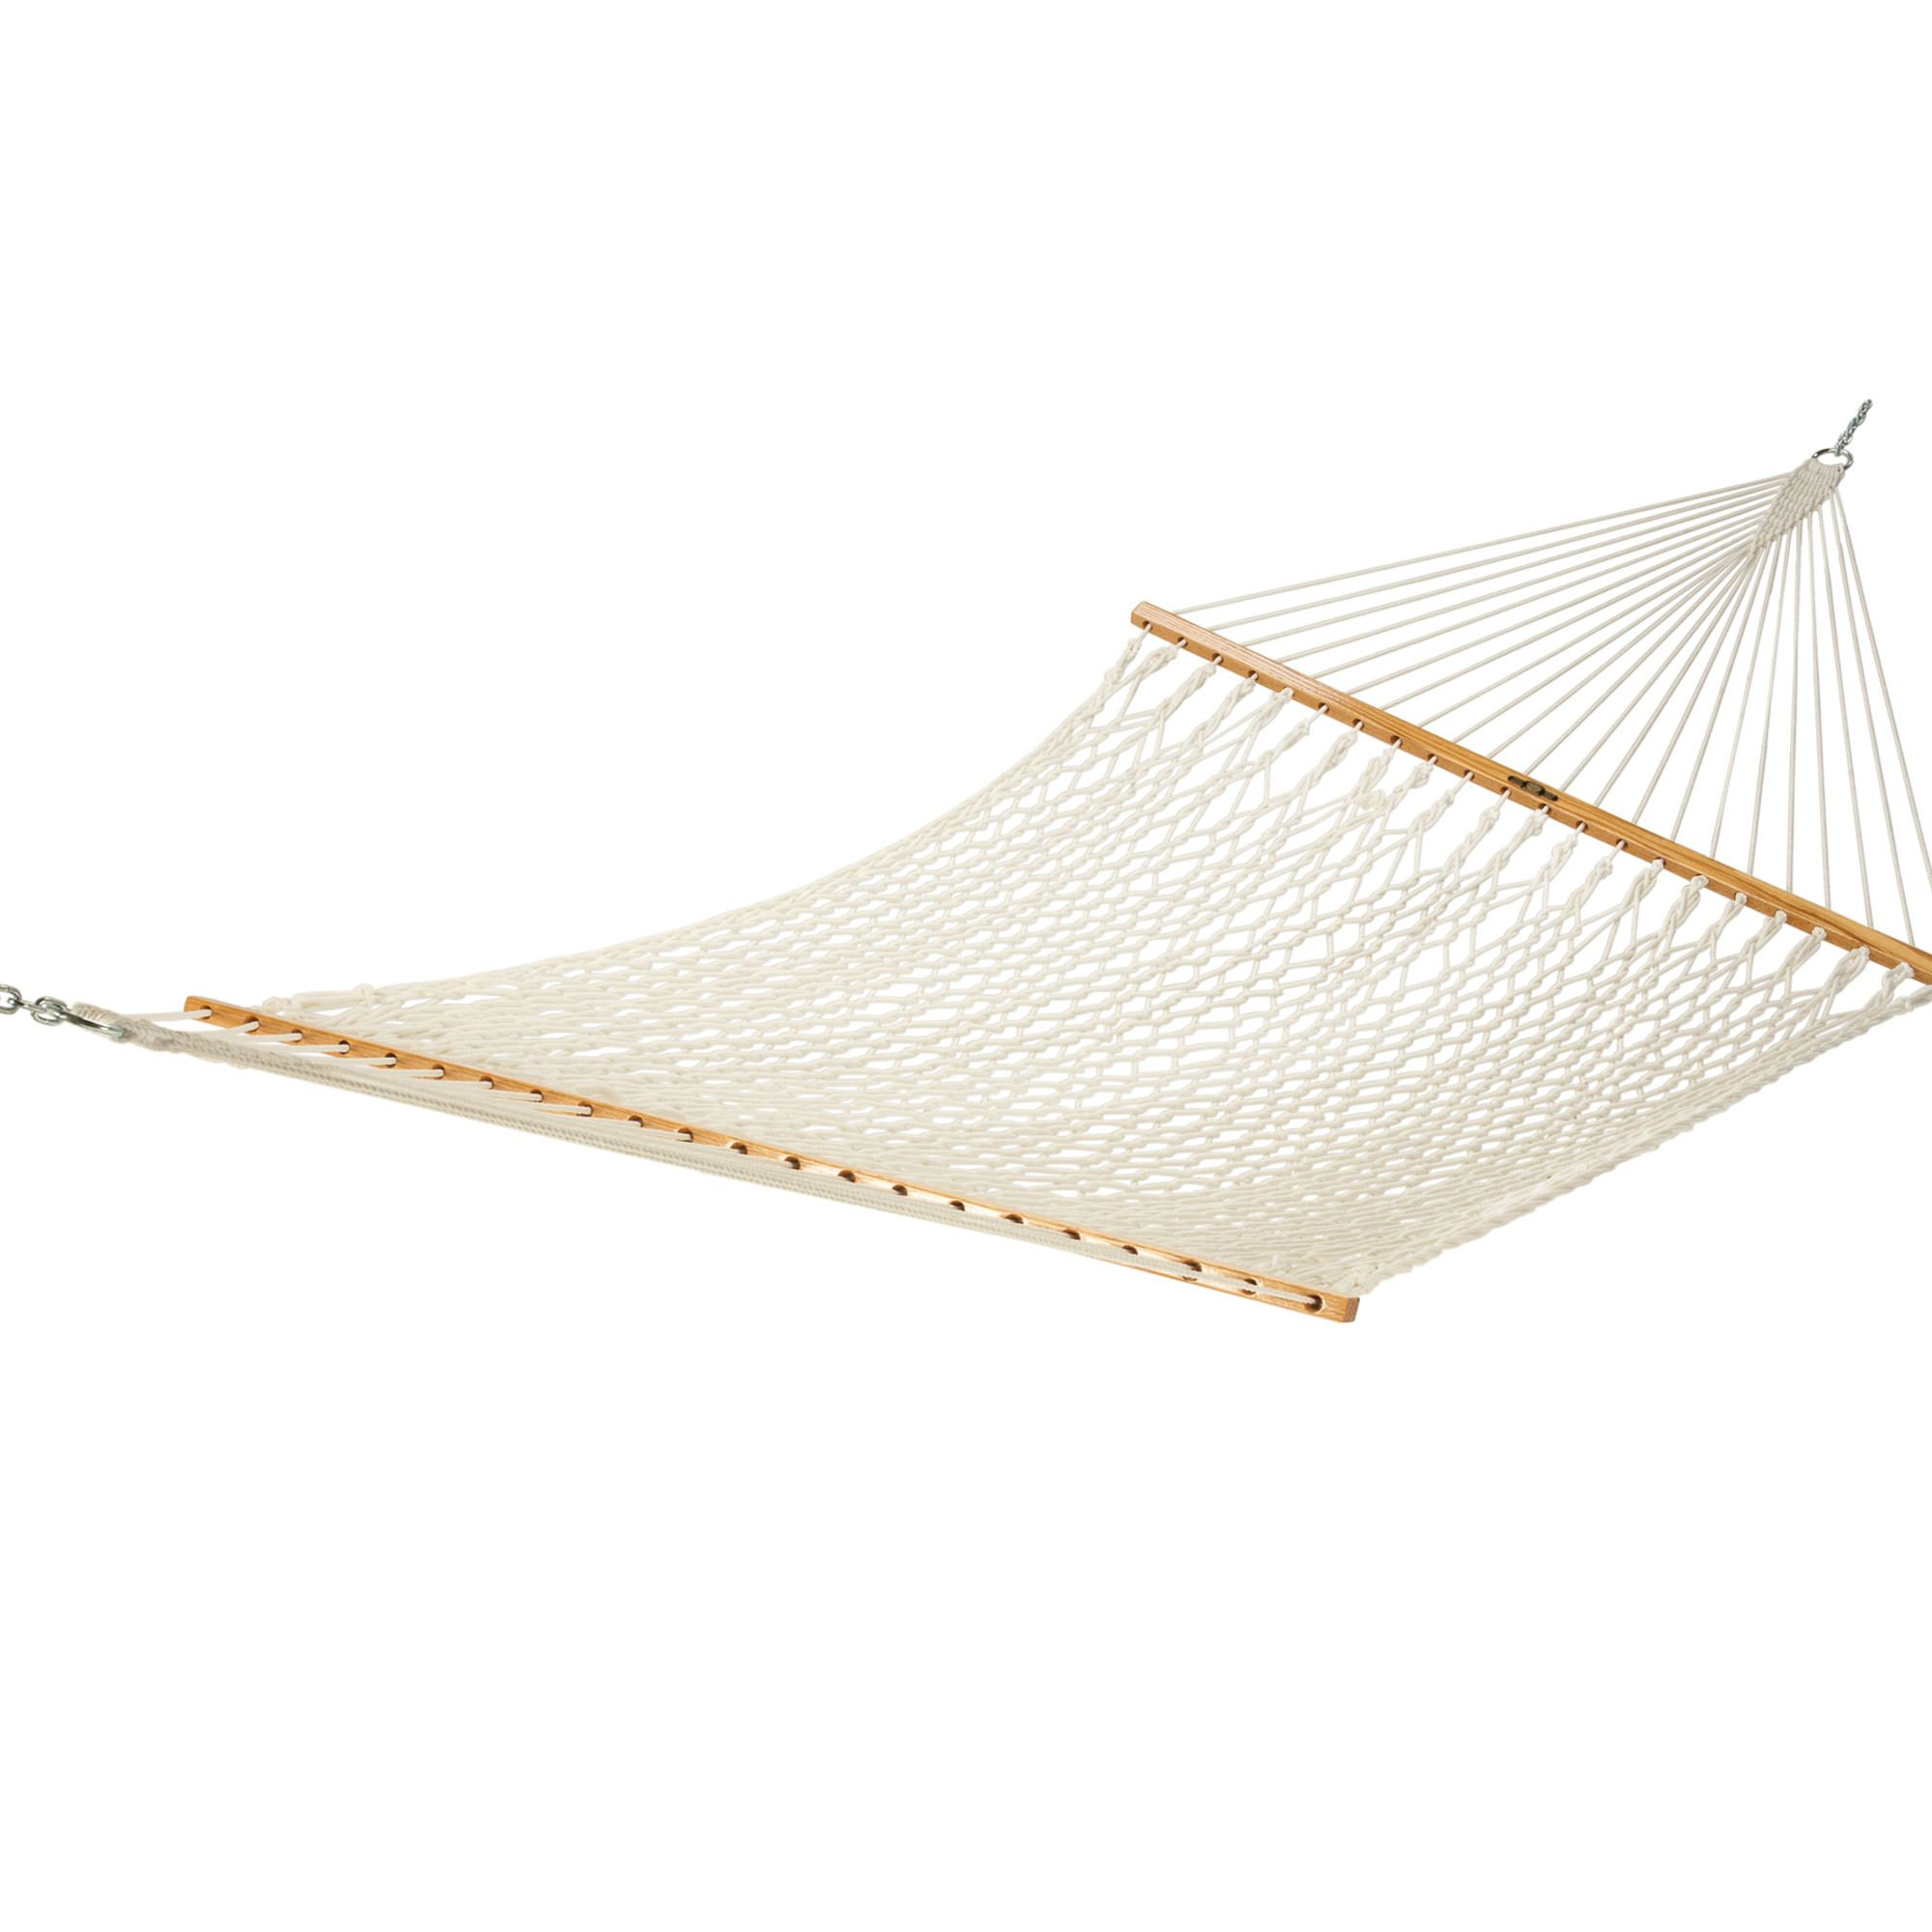 Single Original Cotton Rope Hammock | 12OC | Pawleys Island Hammocks | hammocks | DFOHome